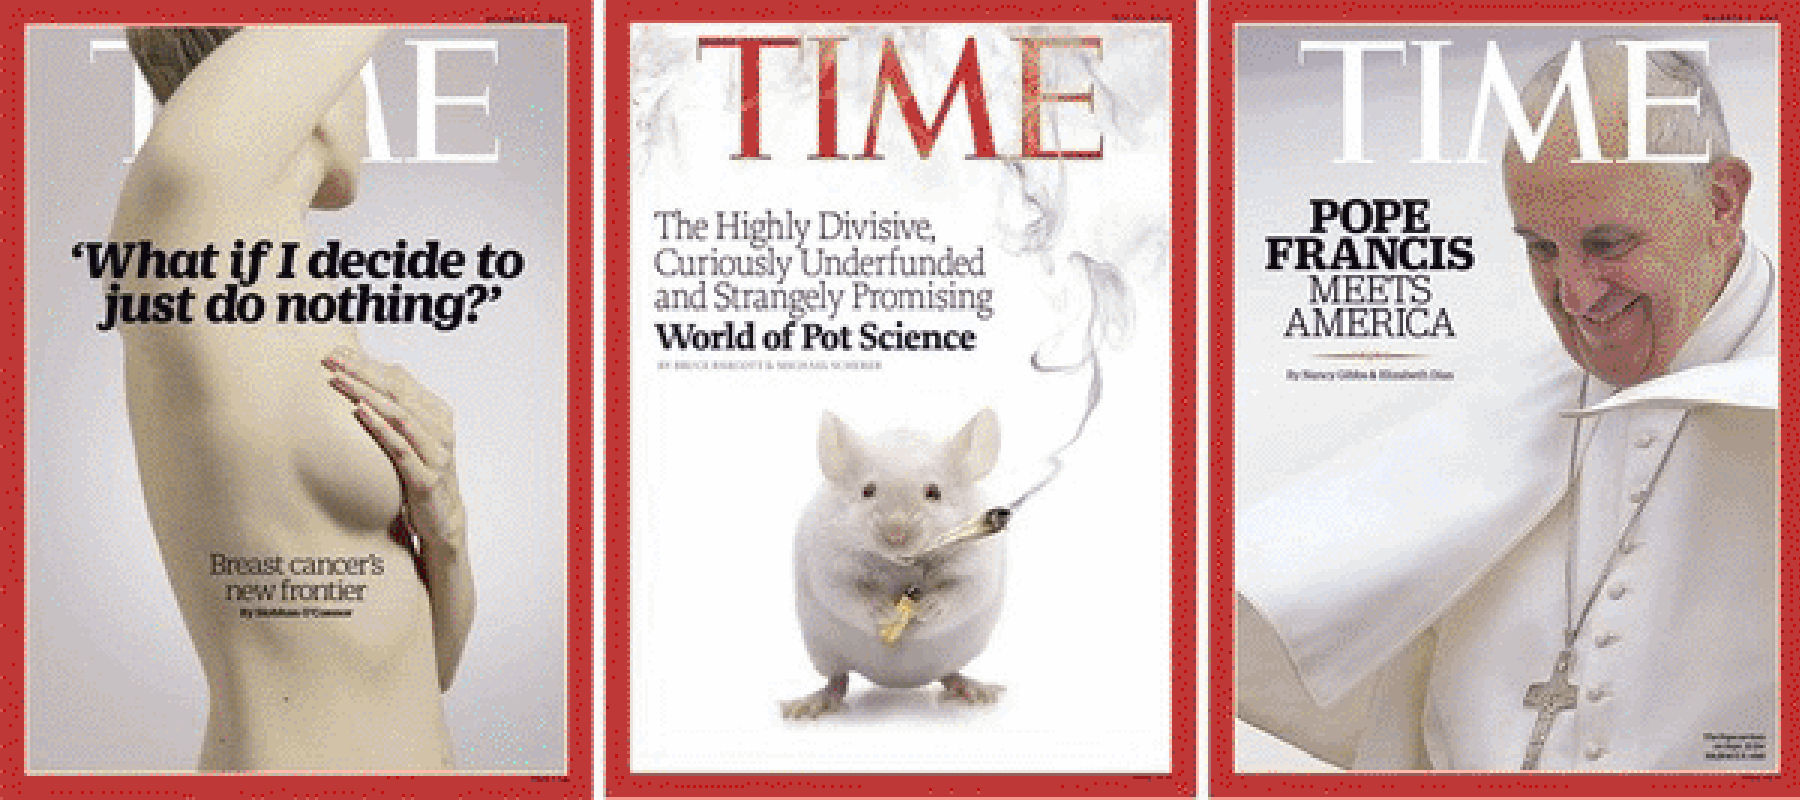 TIME Magazine Article on the Fecal Immunochemical Test